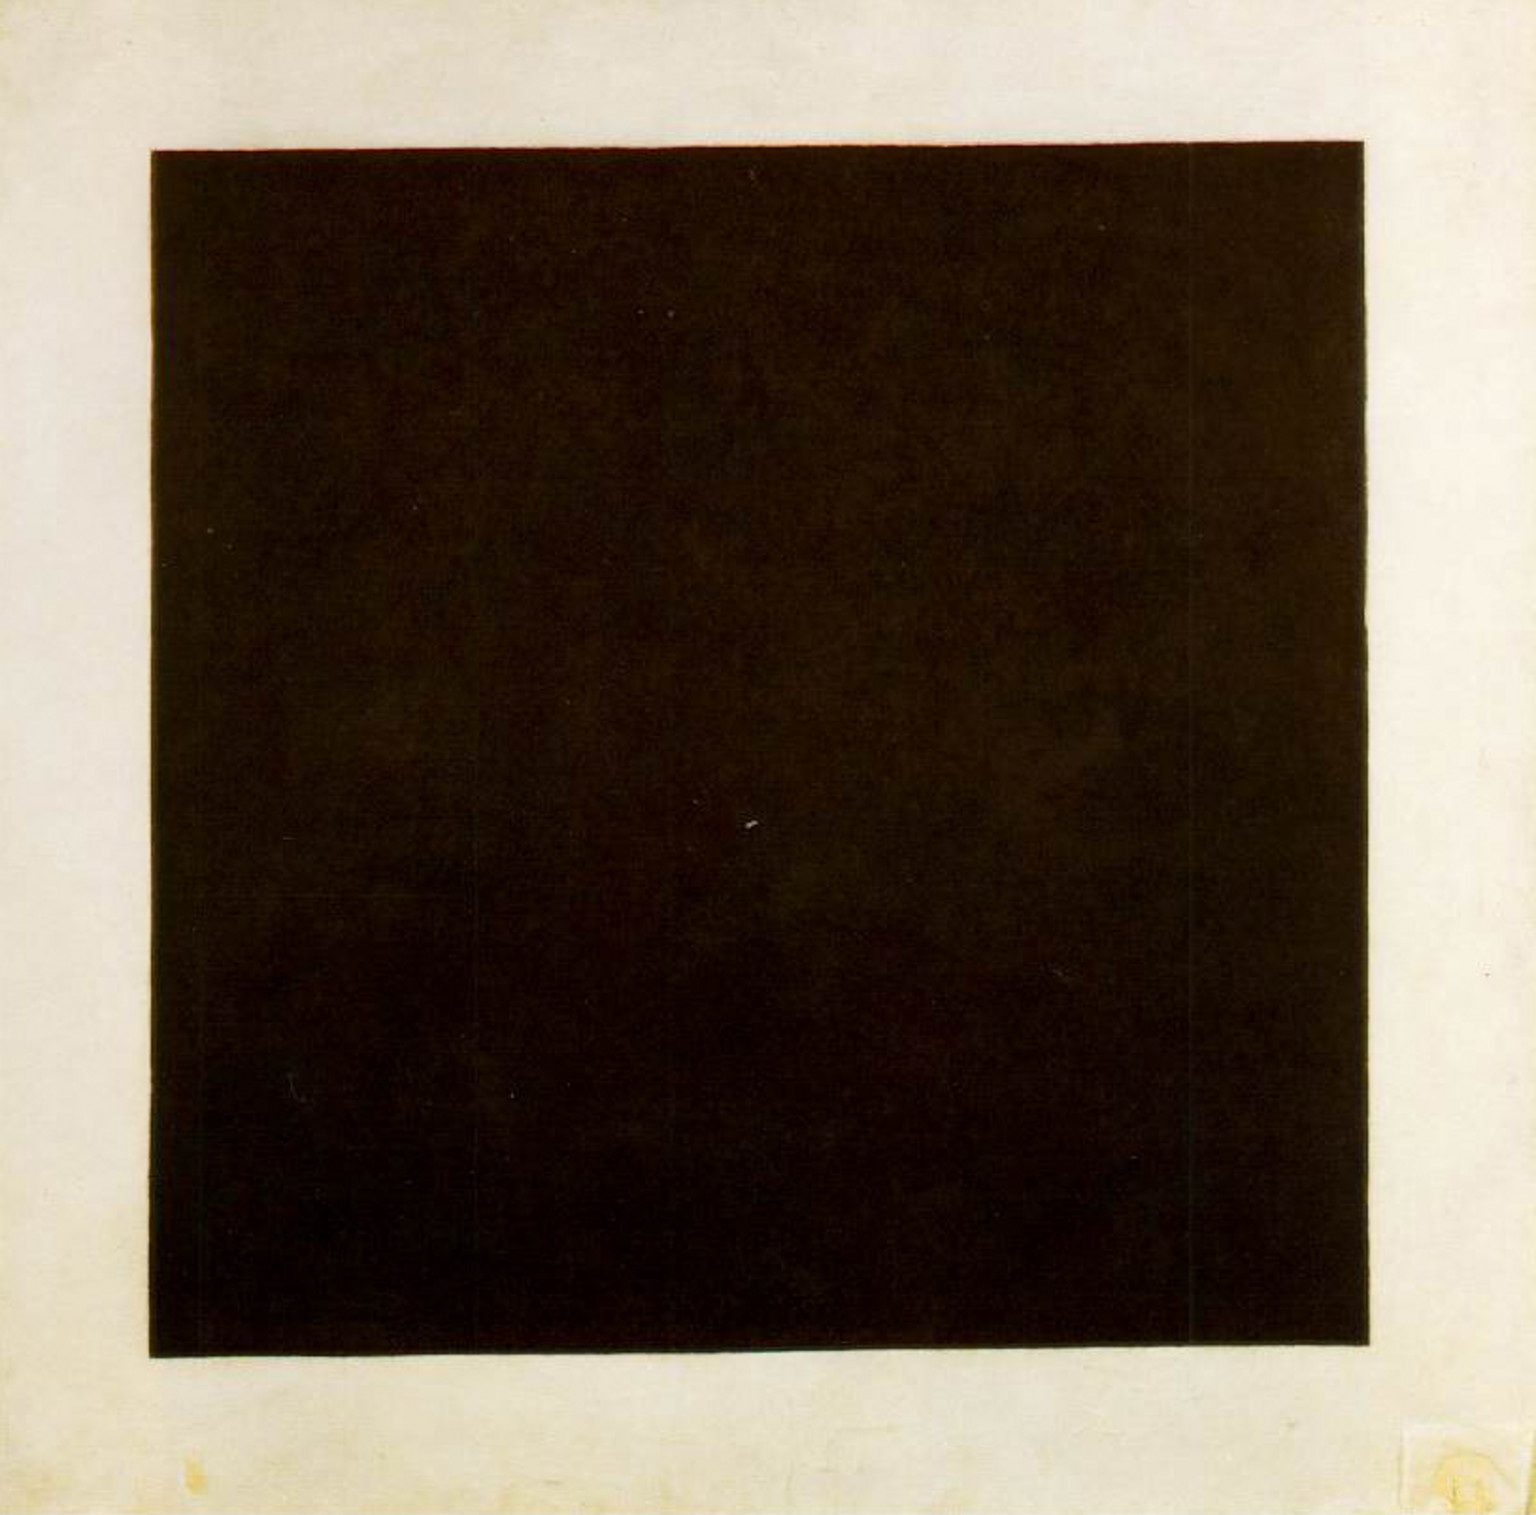 Kasimir Malevich's  Black Square